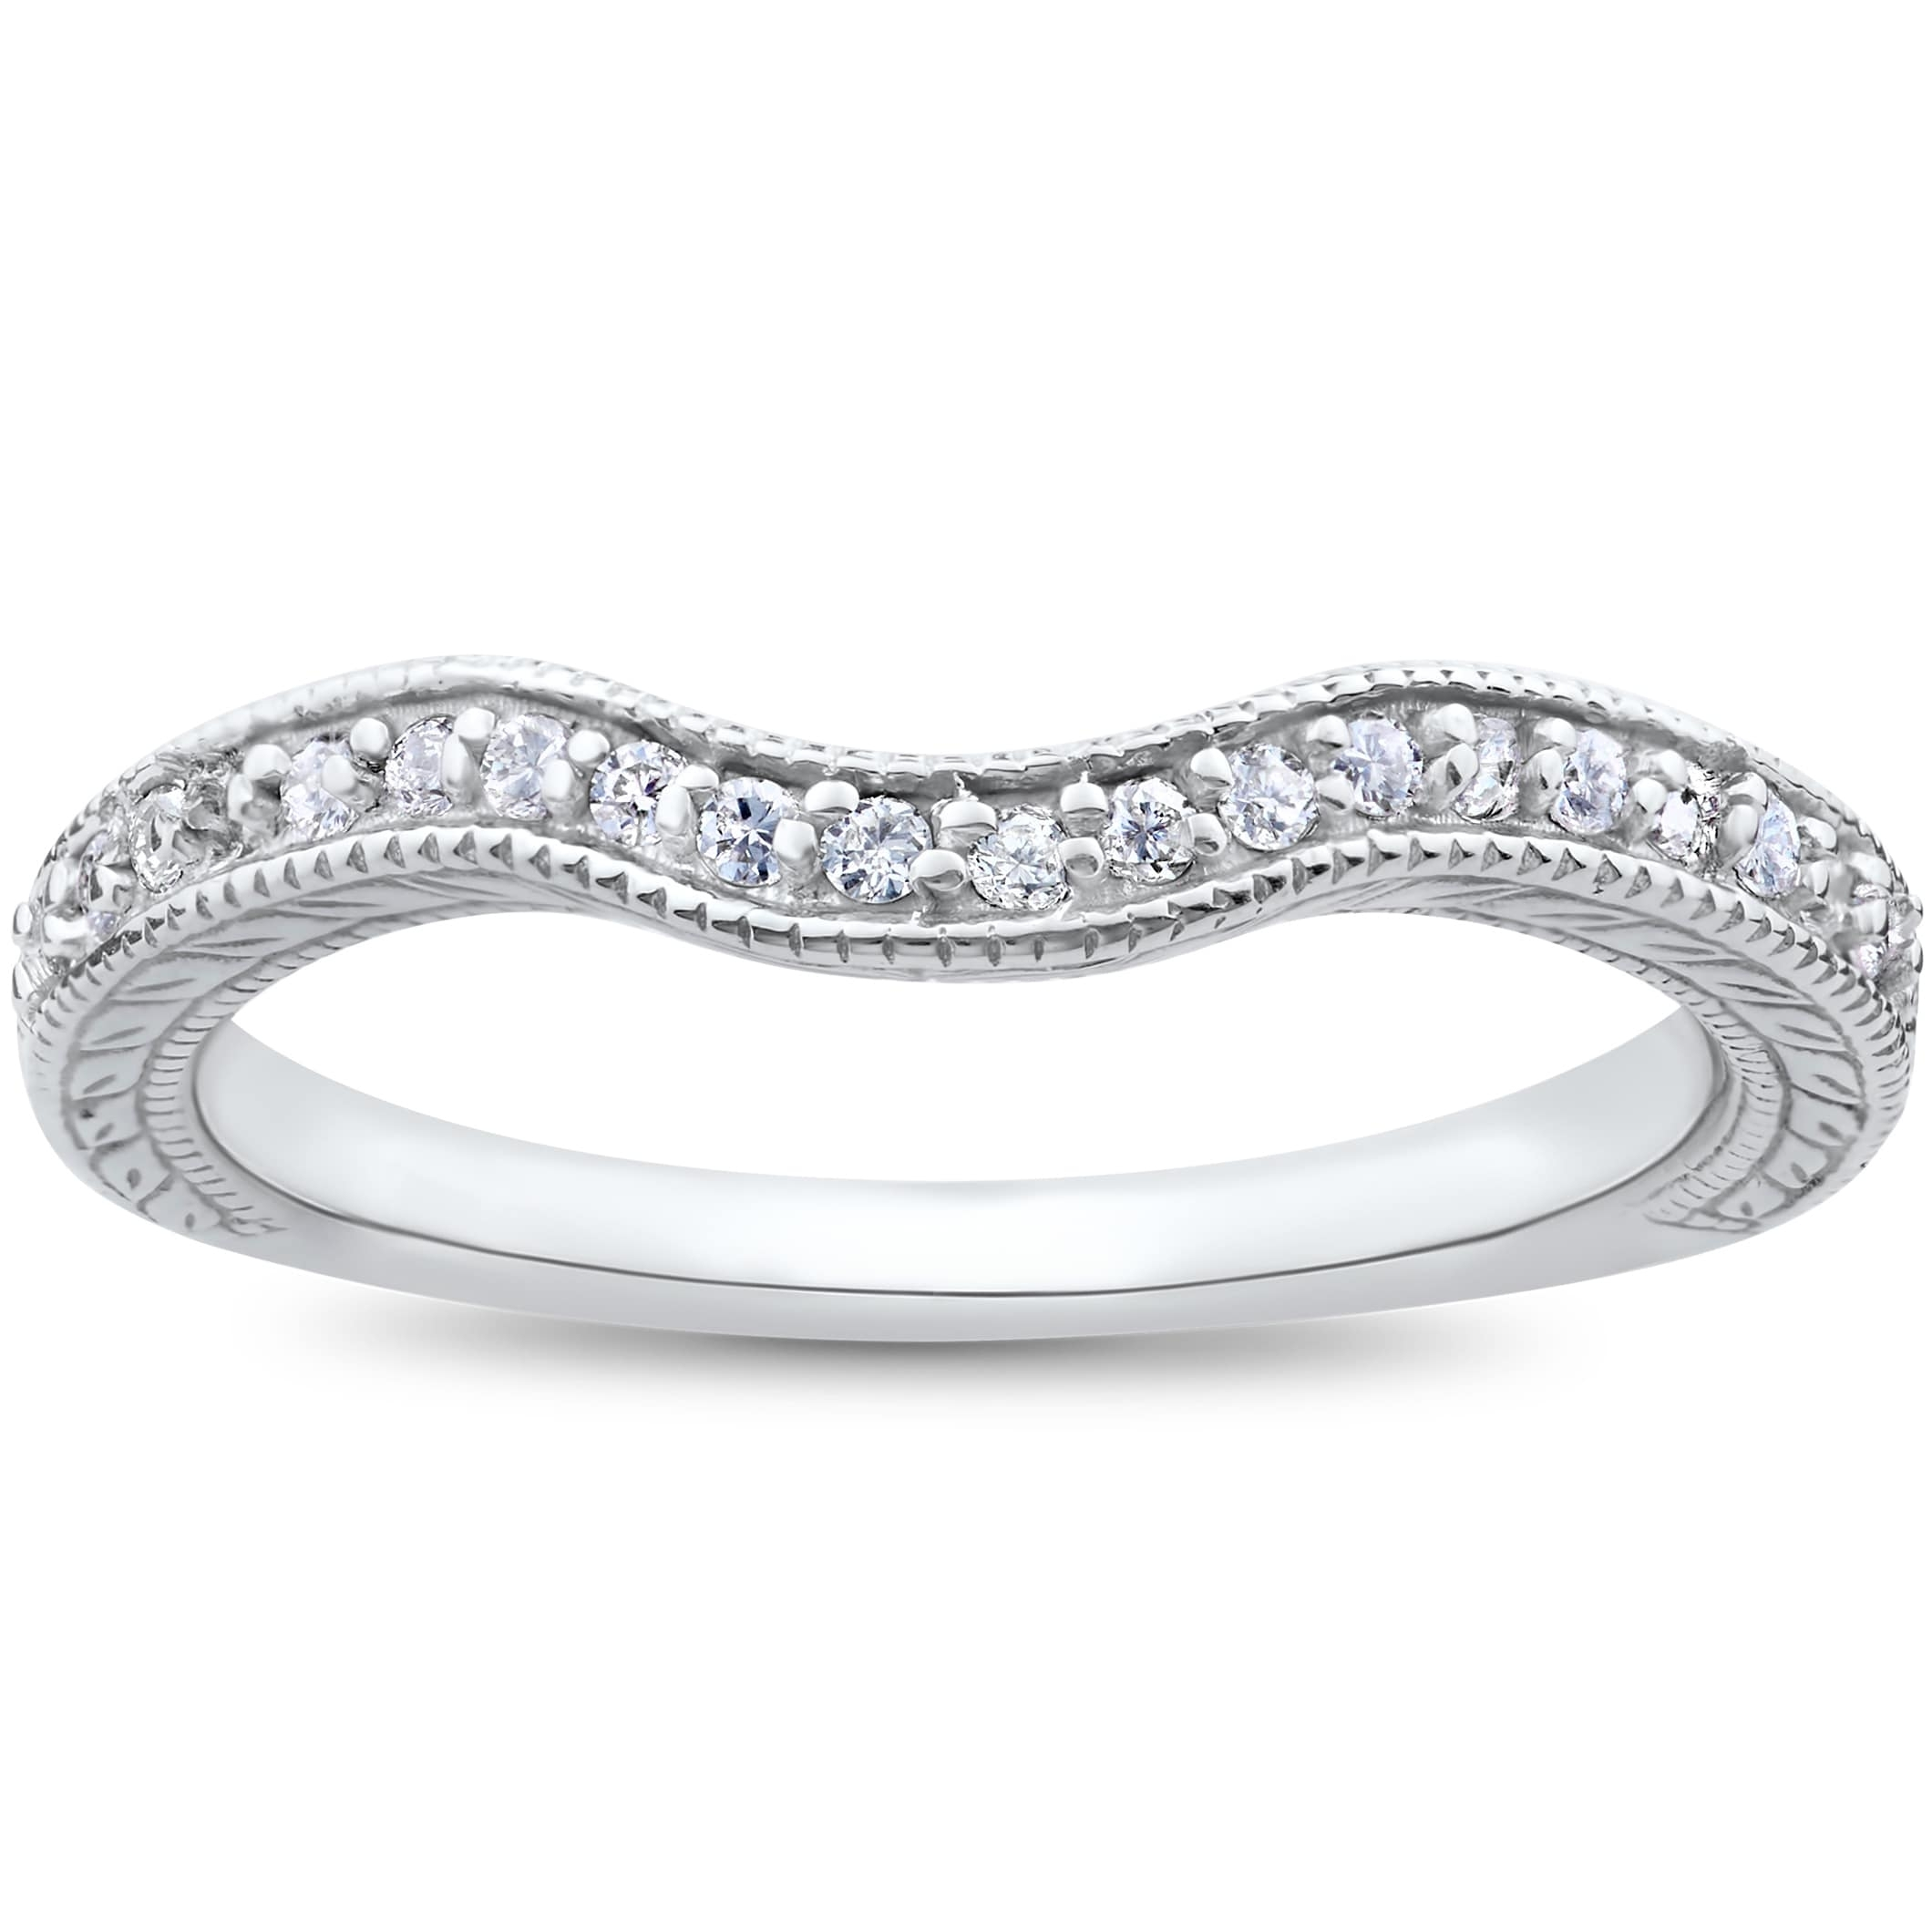 Shop 14K White Gold 1/6Ct Vintage Curved Diamond Contour Wedding With Most Popular Diamond Contour Wedding Bands In 14K White Gold (Gallery 2 of 15)